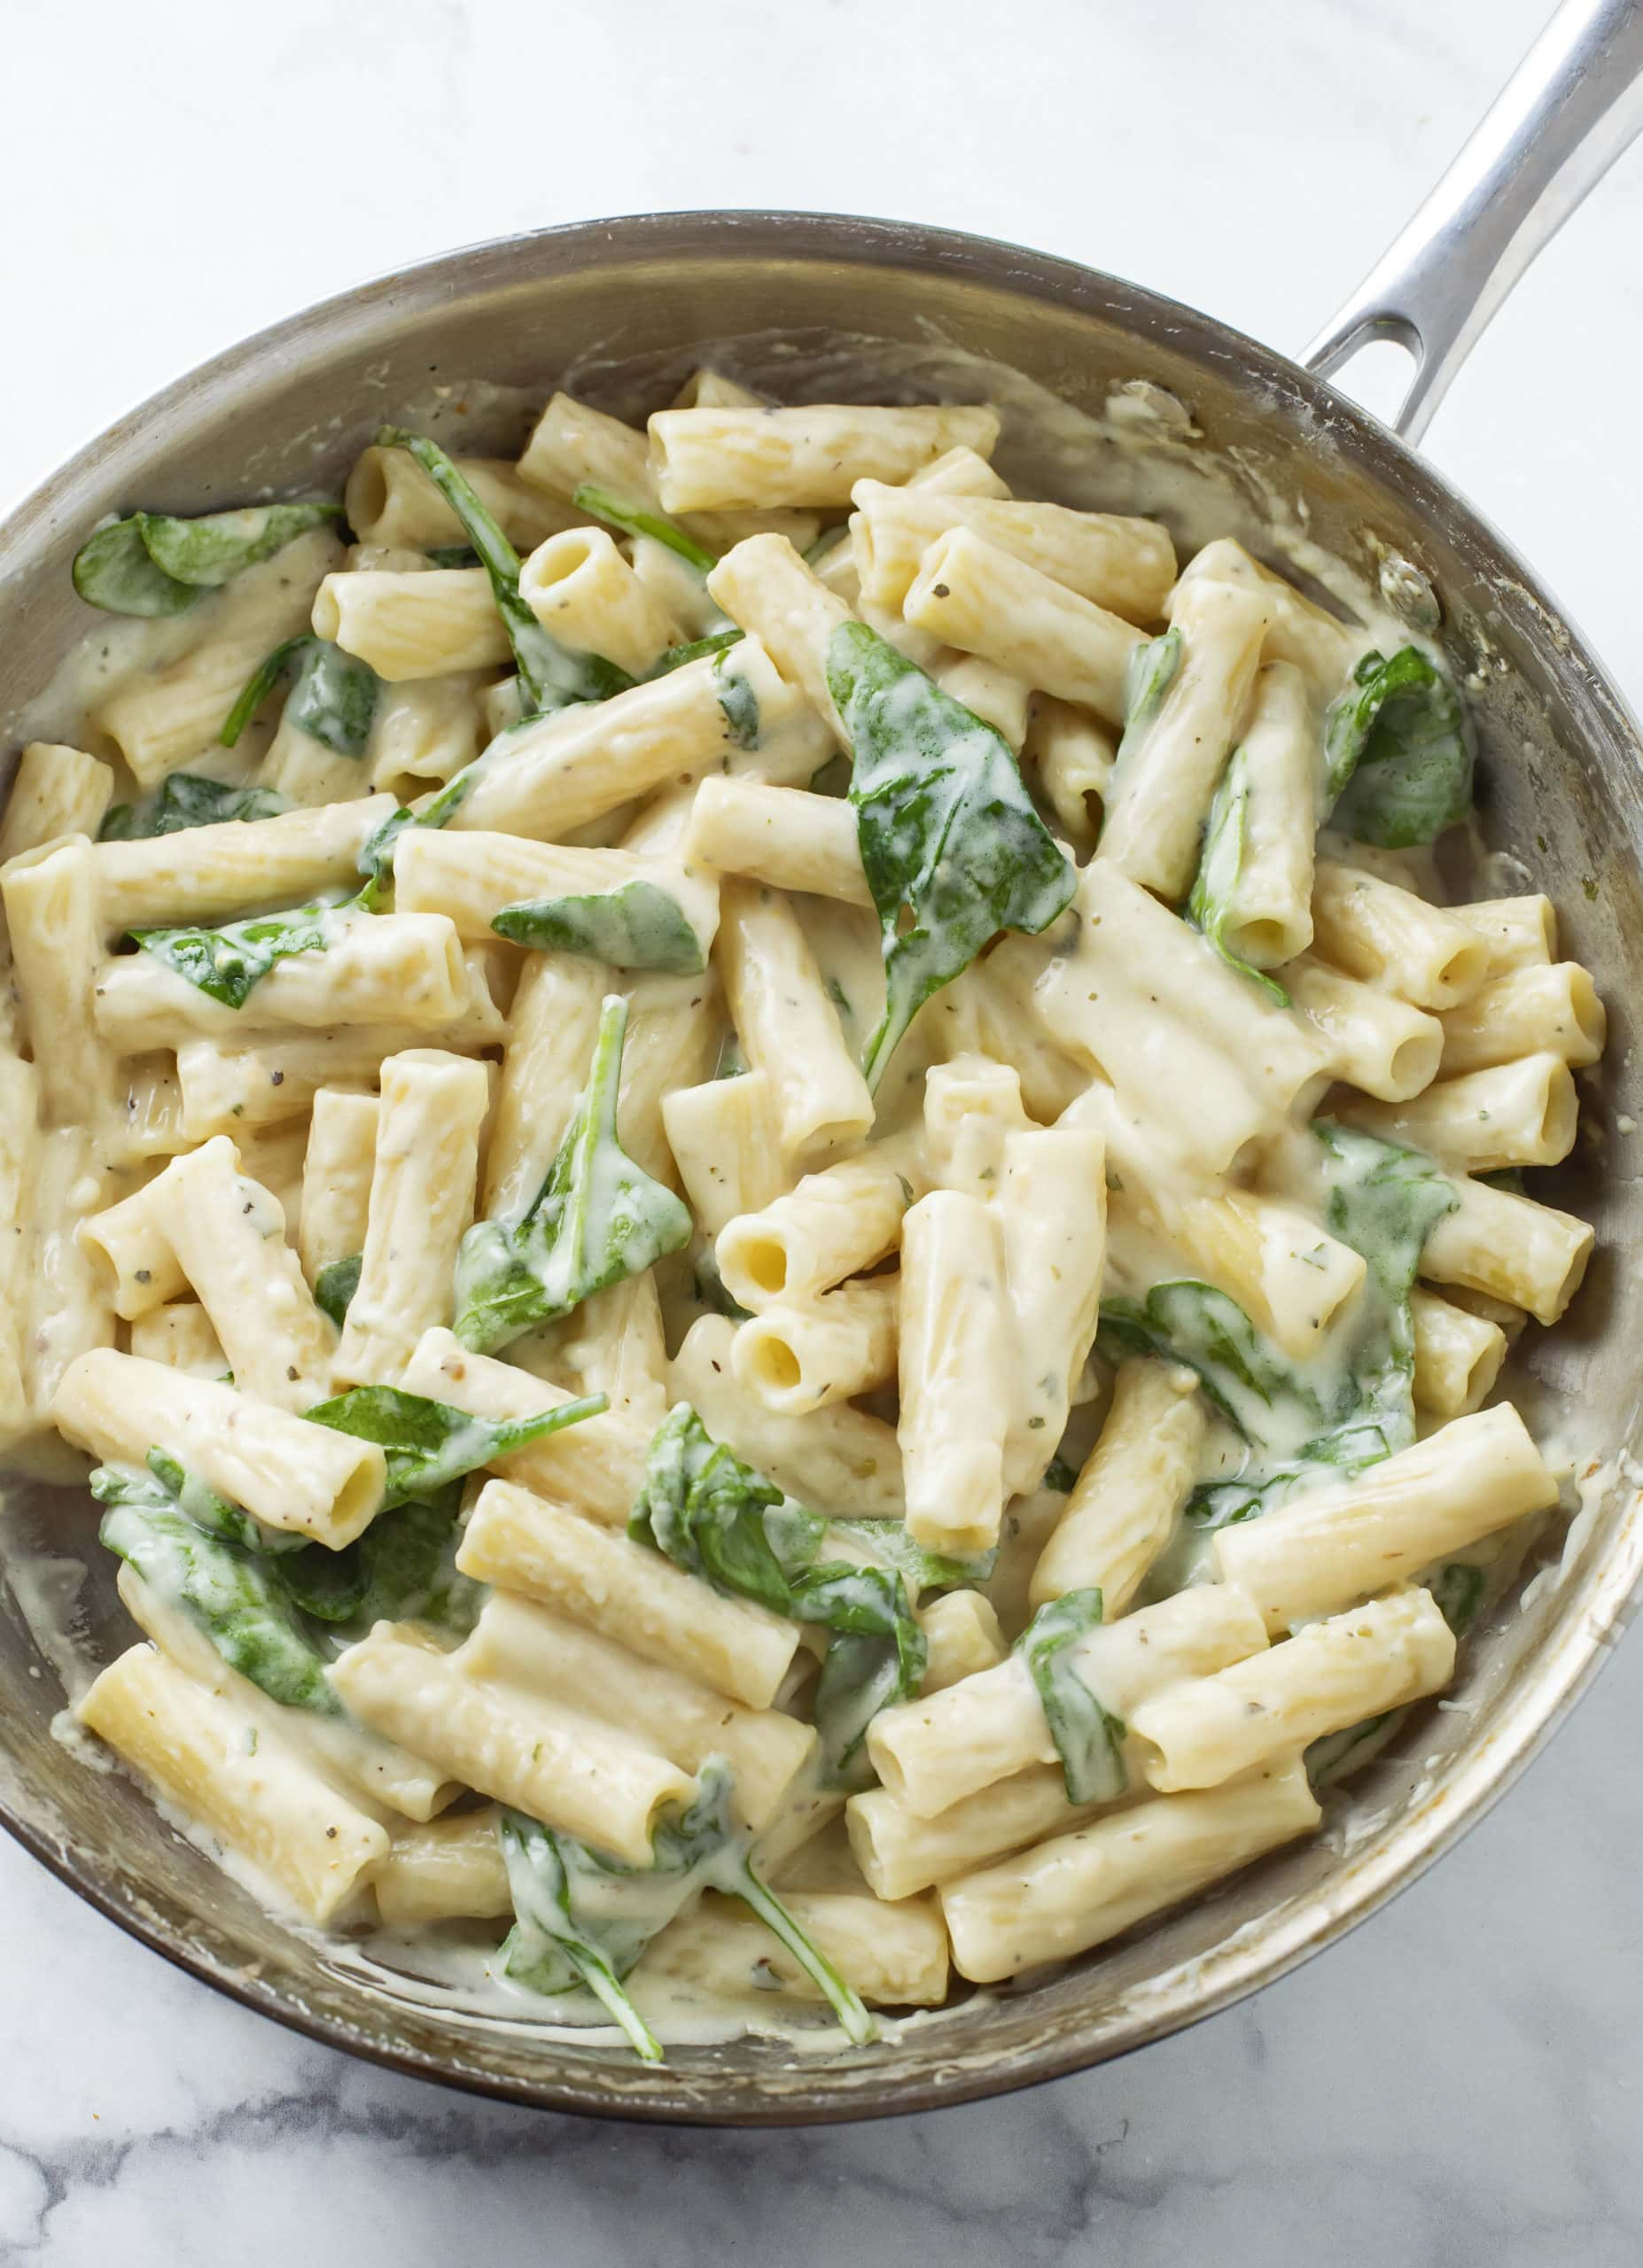 A silver skillet filled with Creamy Broccoli Pasta in a Garlic Parmesan Sauce.